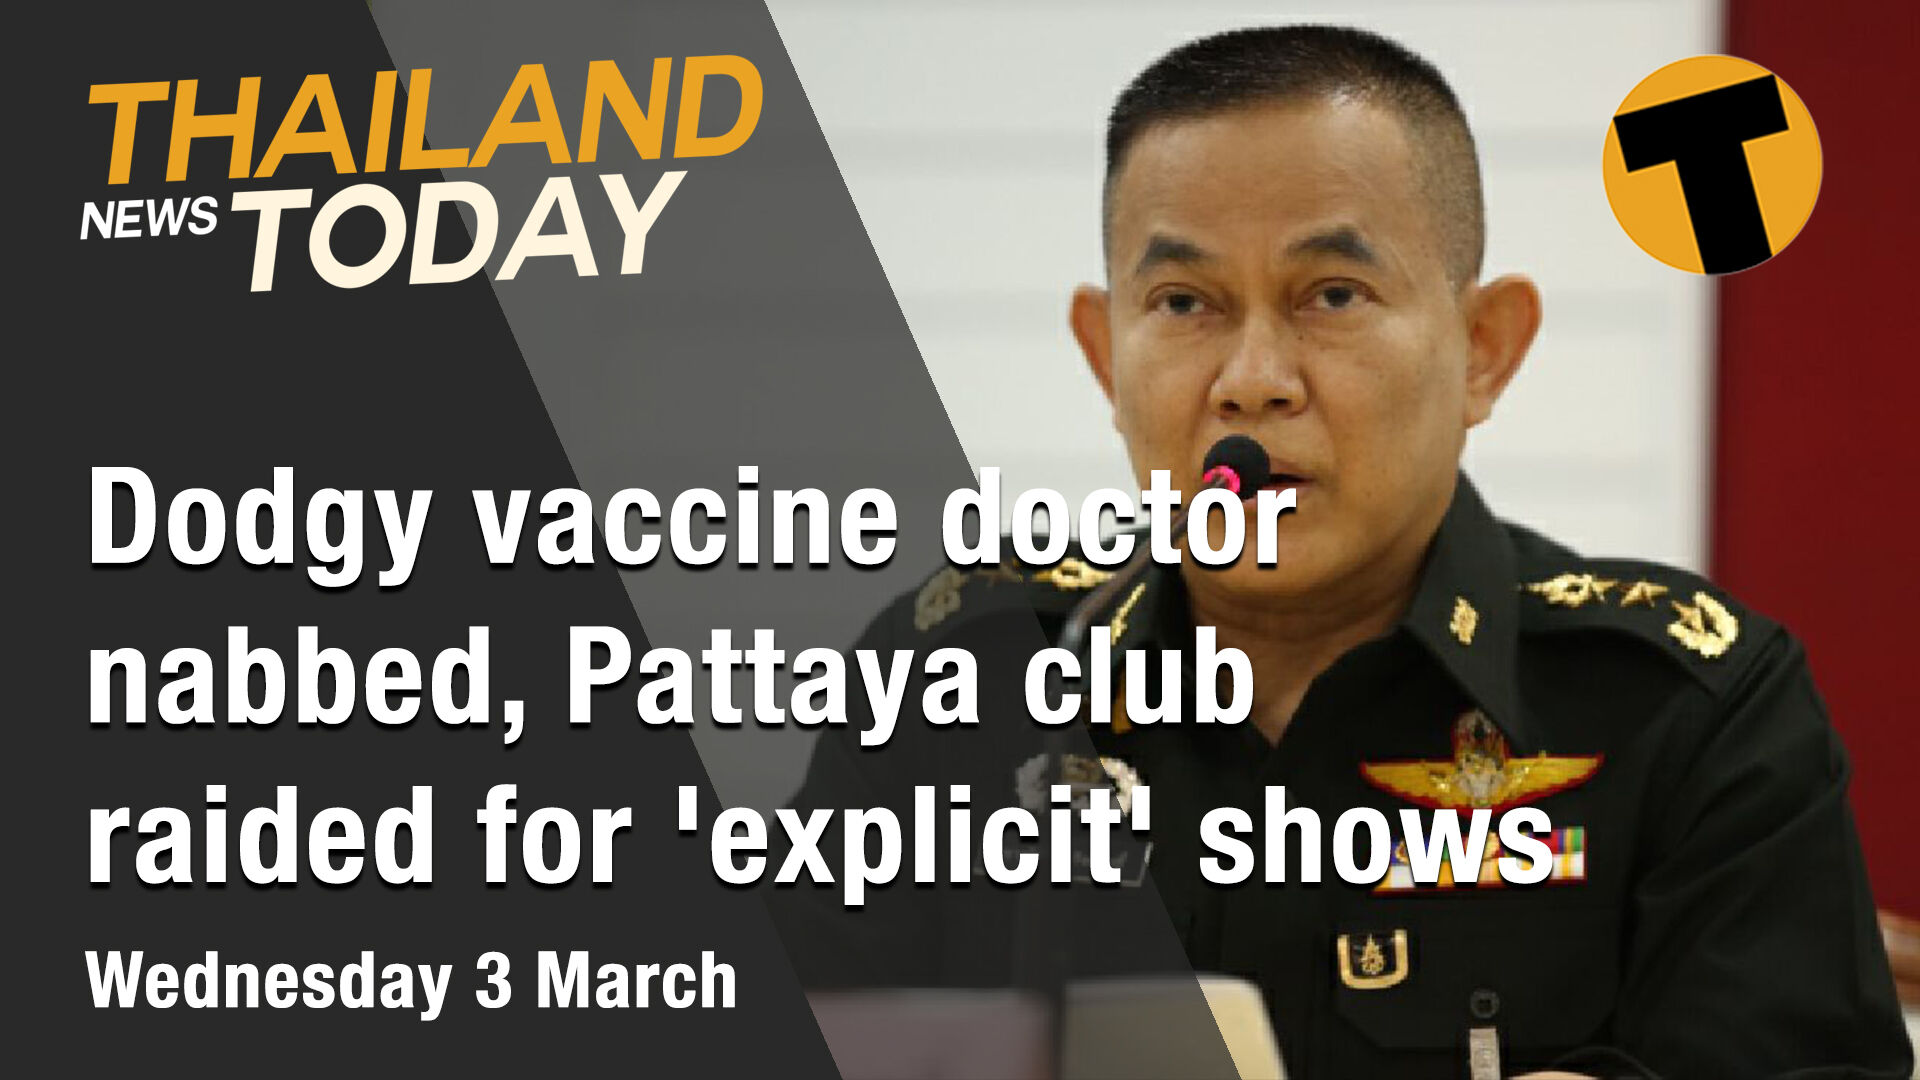 Thailand News Today | Dodgy vaccine doctor nabbed,Pattaya club raided for 'explicit' shows | March 3 | The Thaiger